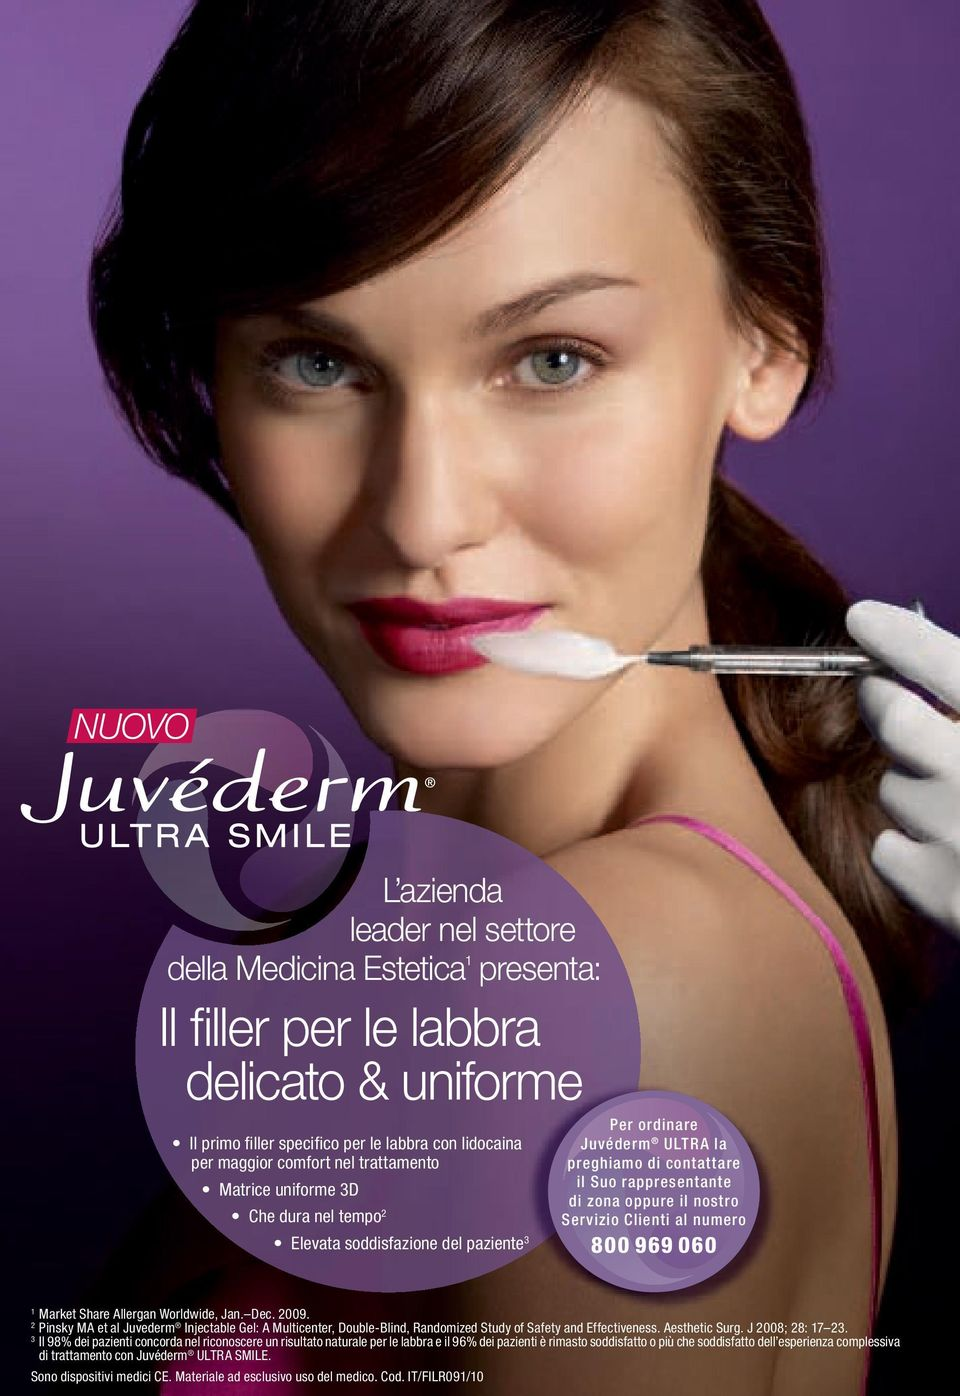 Servizio Clienti al numero 800 969 060 1 Market Share Allergan Worldwide, Jan. Dec. 2009.